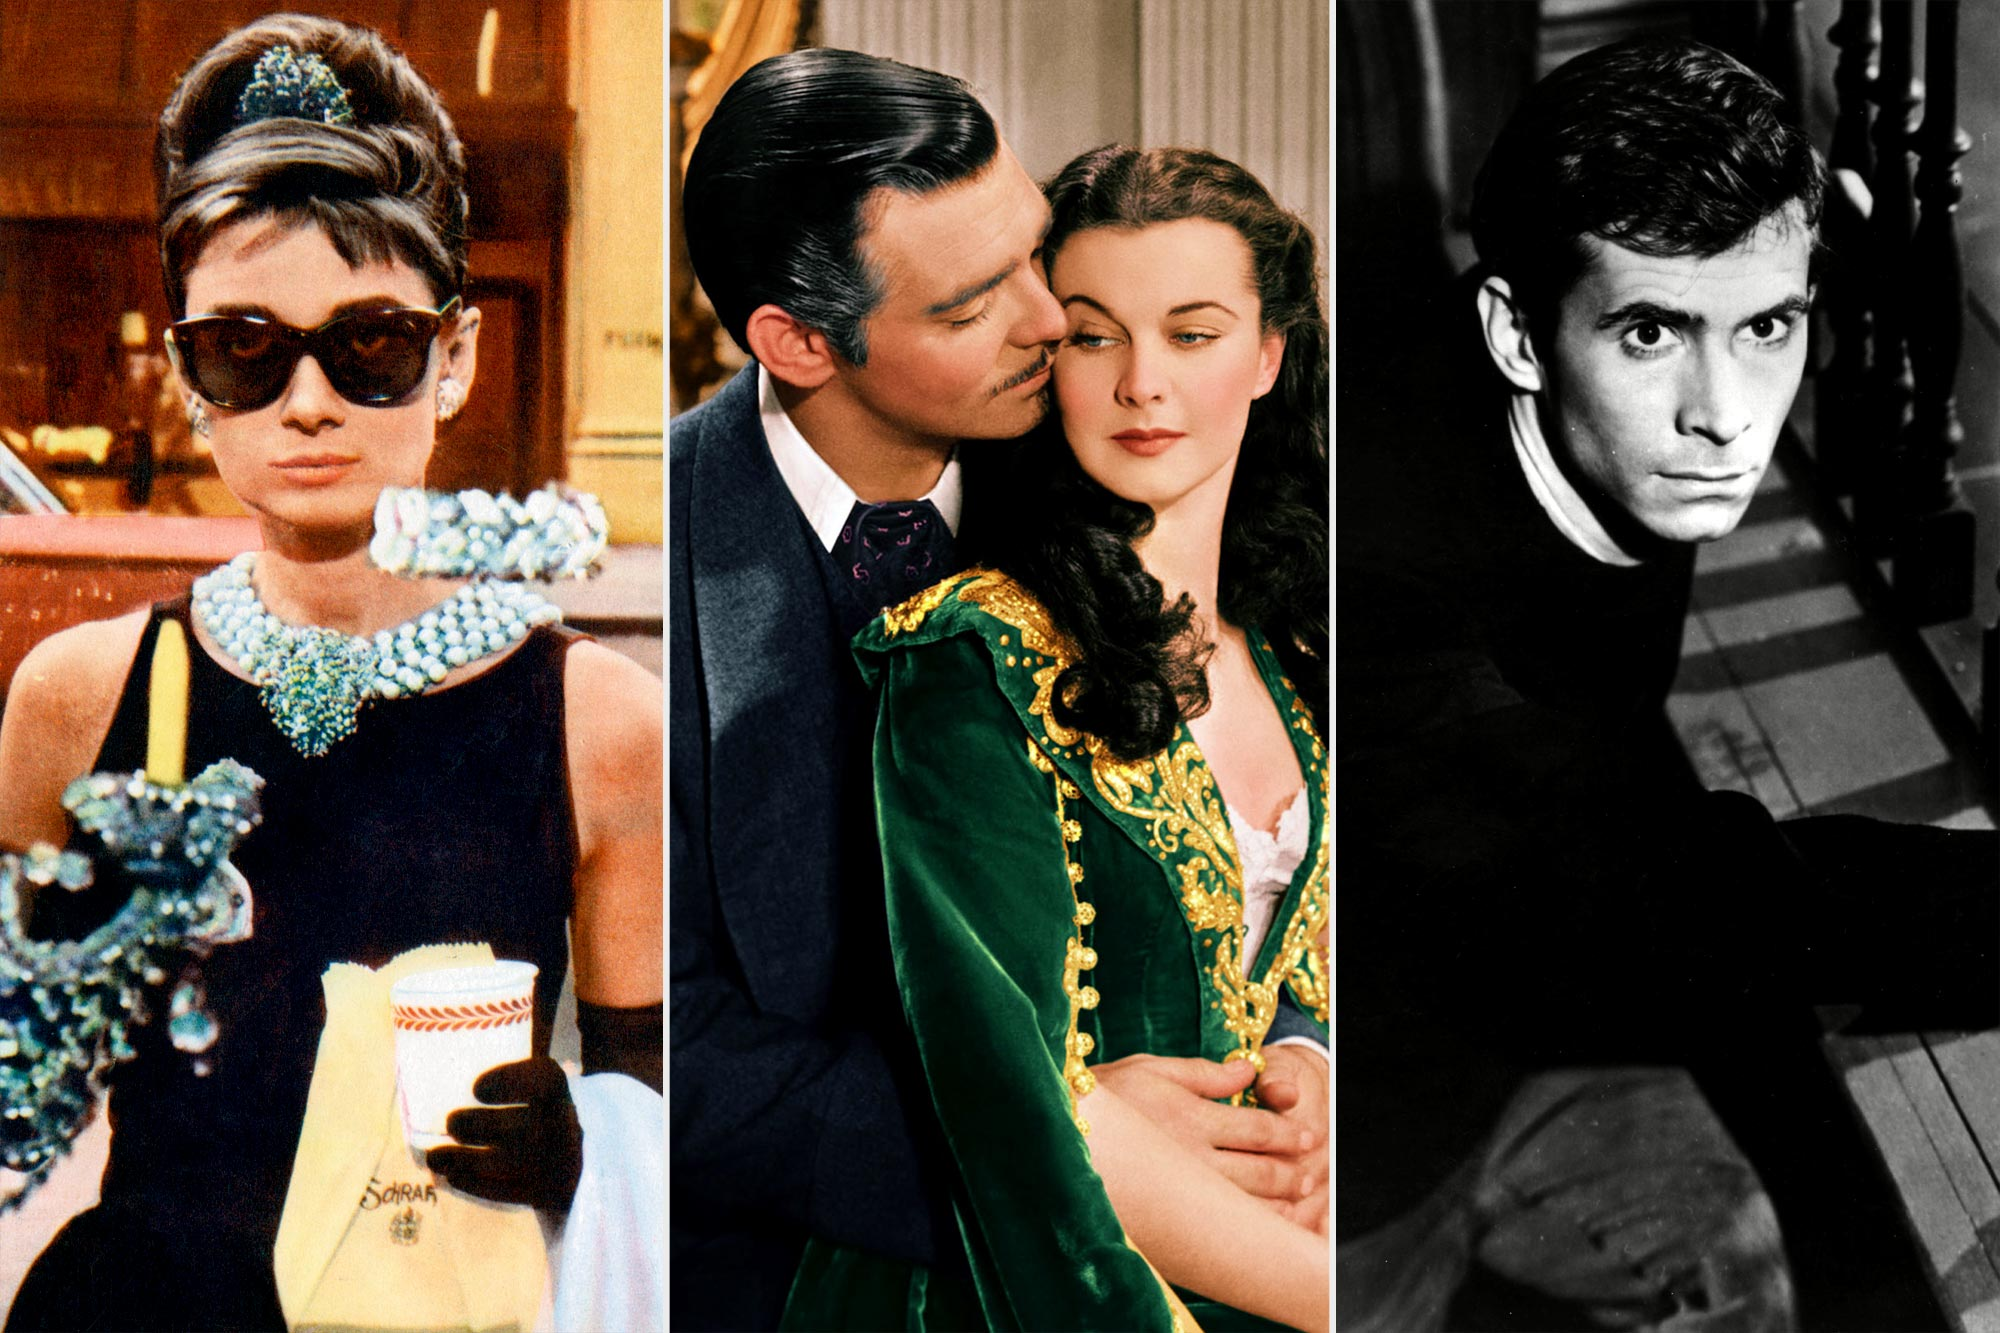 Breakfast at Tiffany's; Gone with the Wind; Psycho